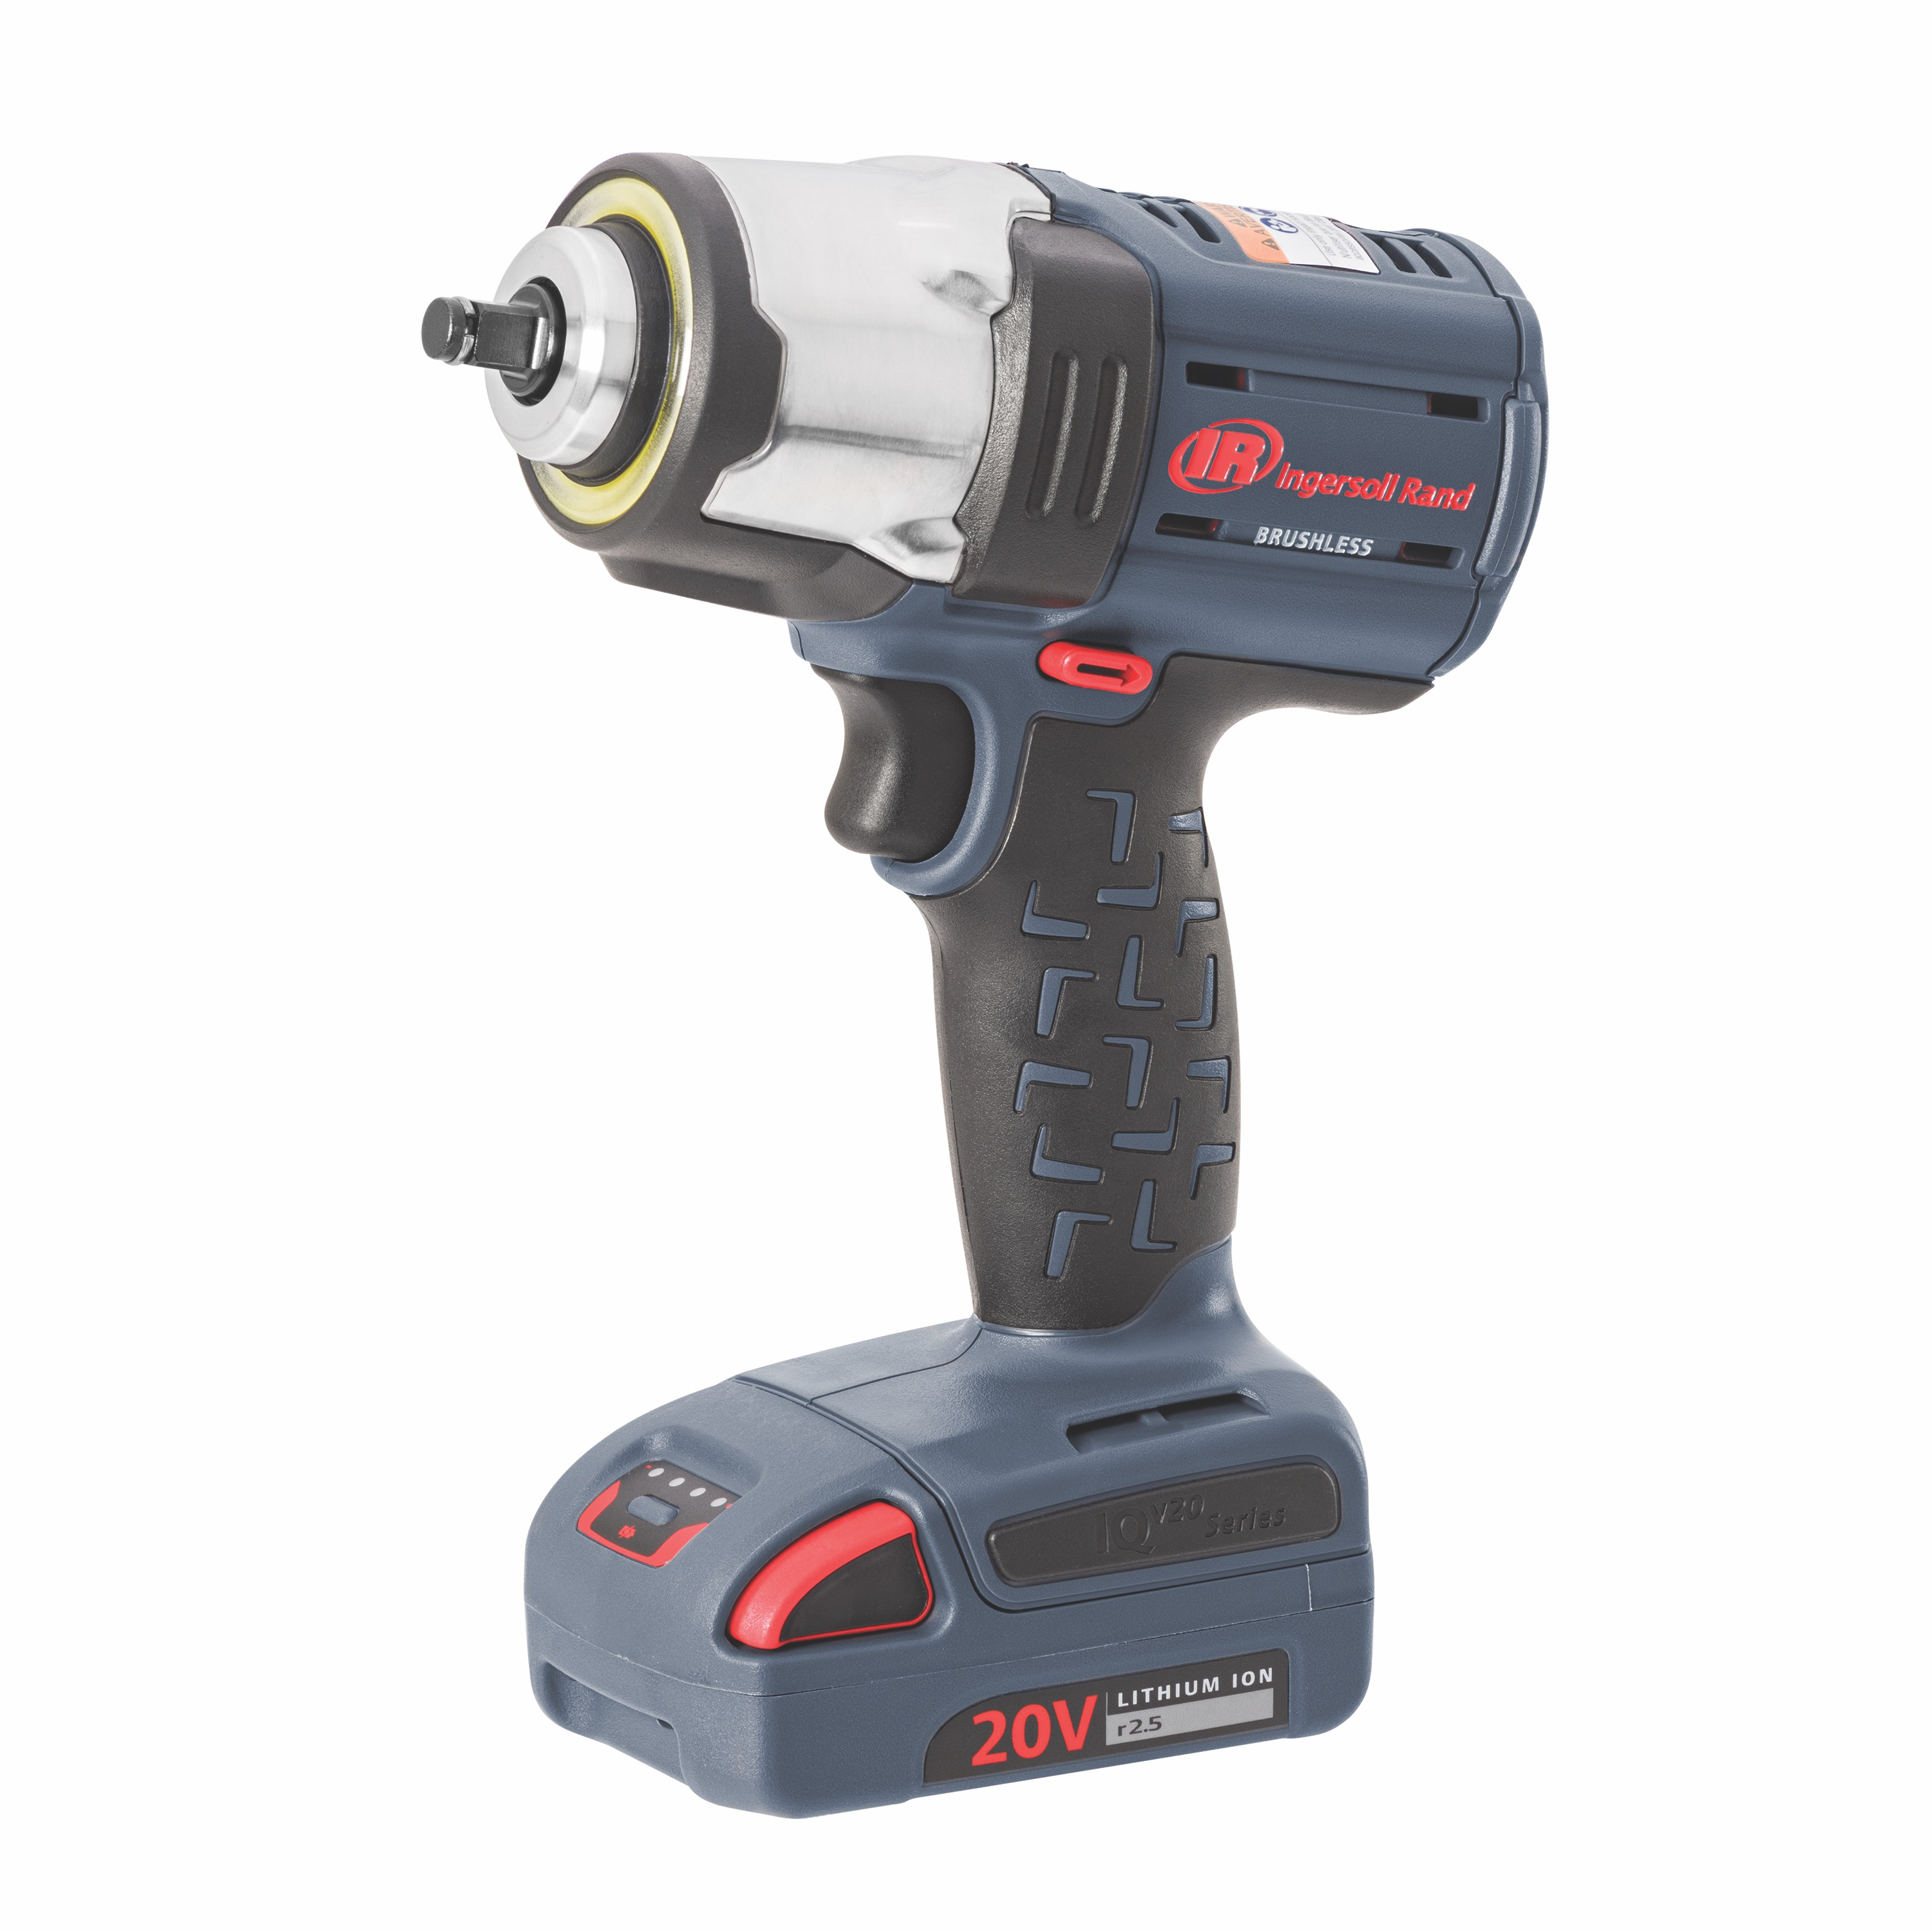 Ingersoll Rand Has New Compact Impact Wrench